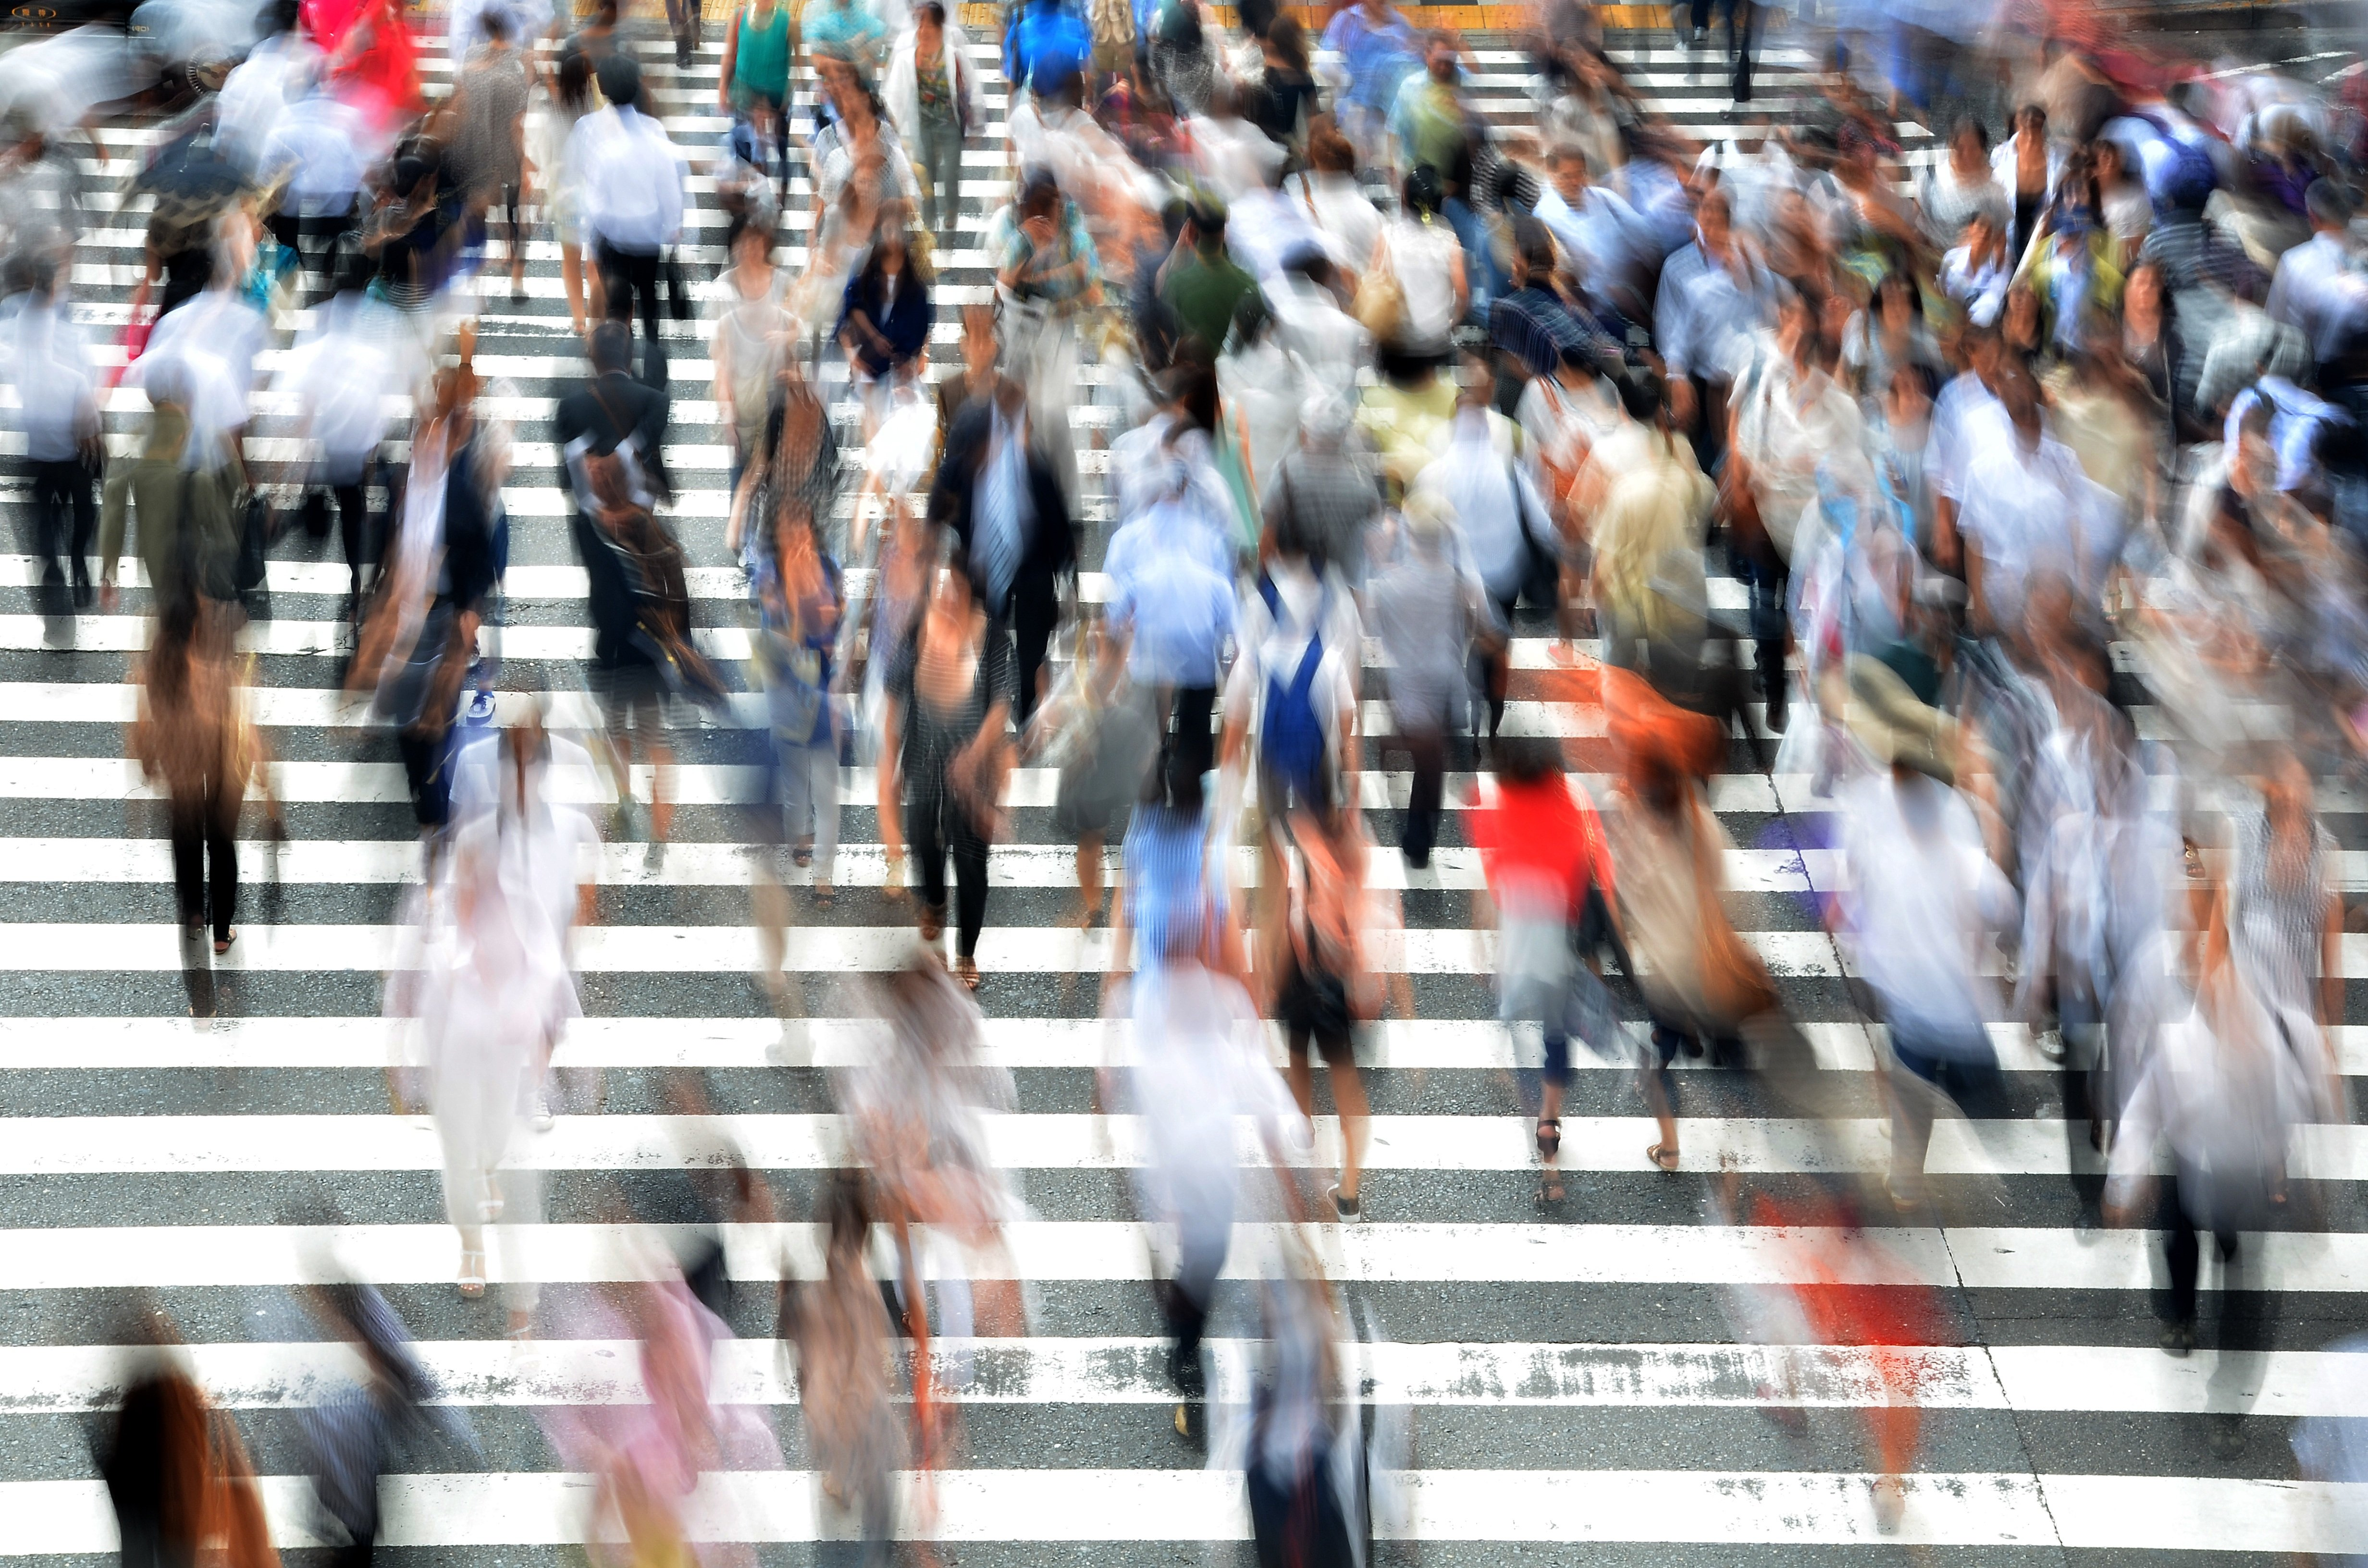 pedestrians-people-busy-movement-hectic-osaka.jpg